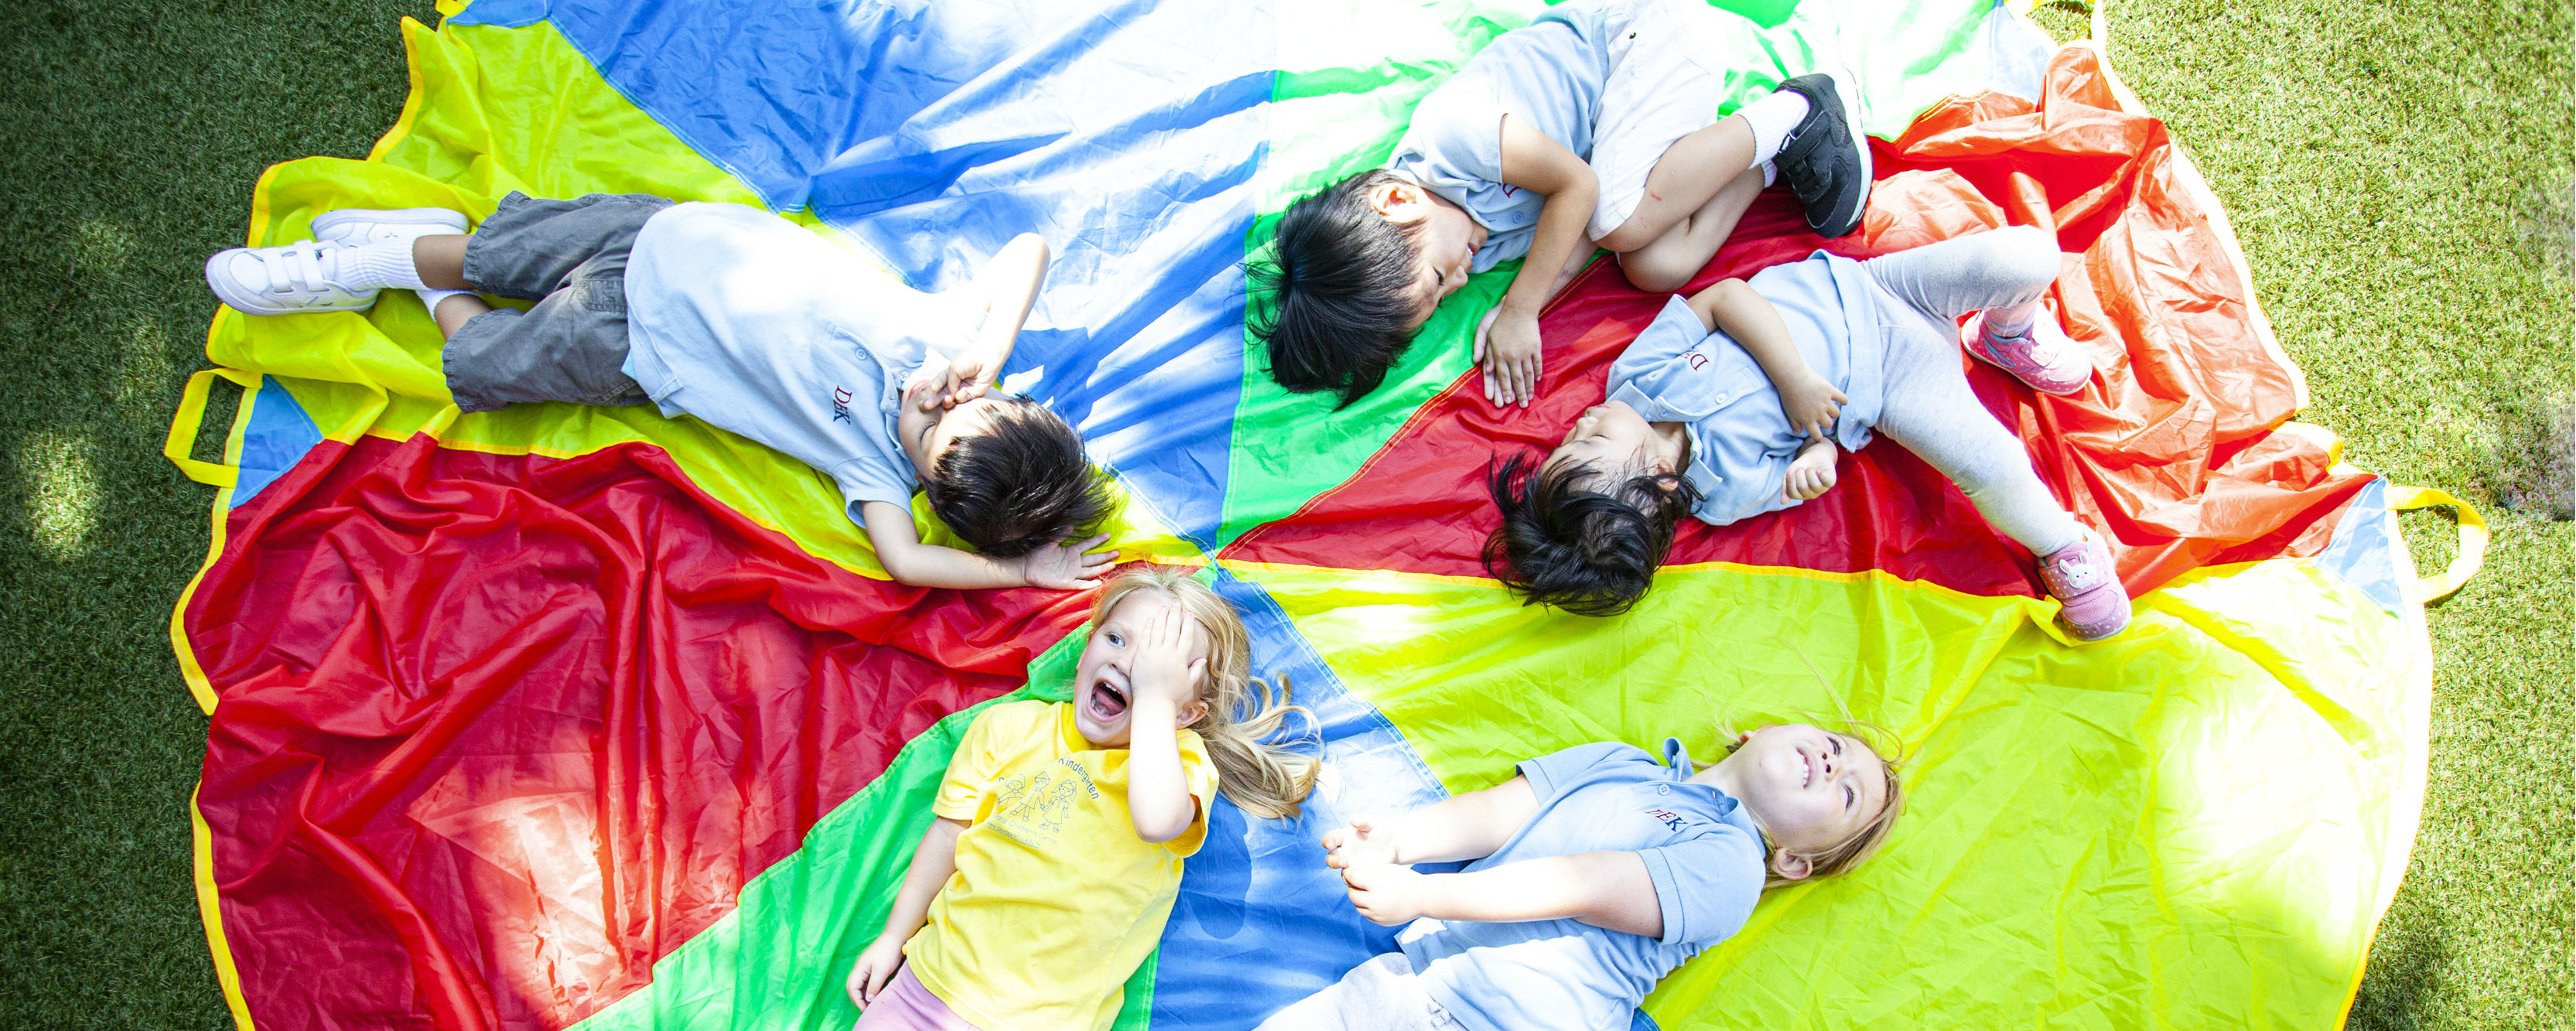 Vision Kindergarten children lying on colourful circle on grass